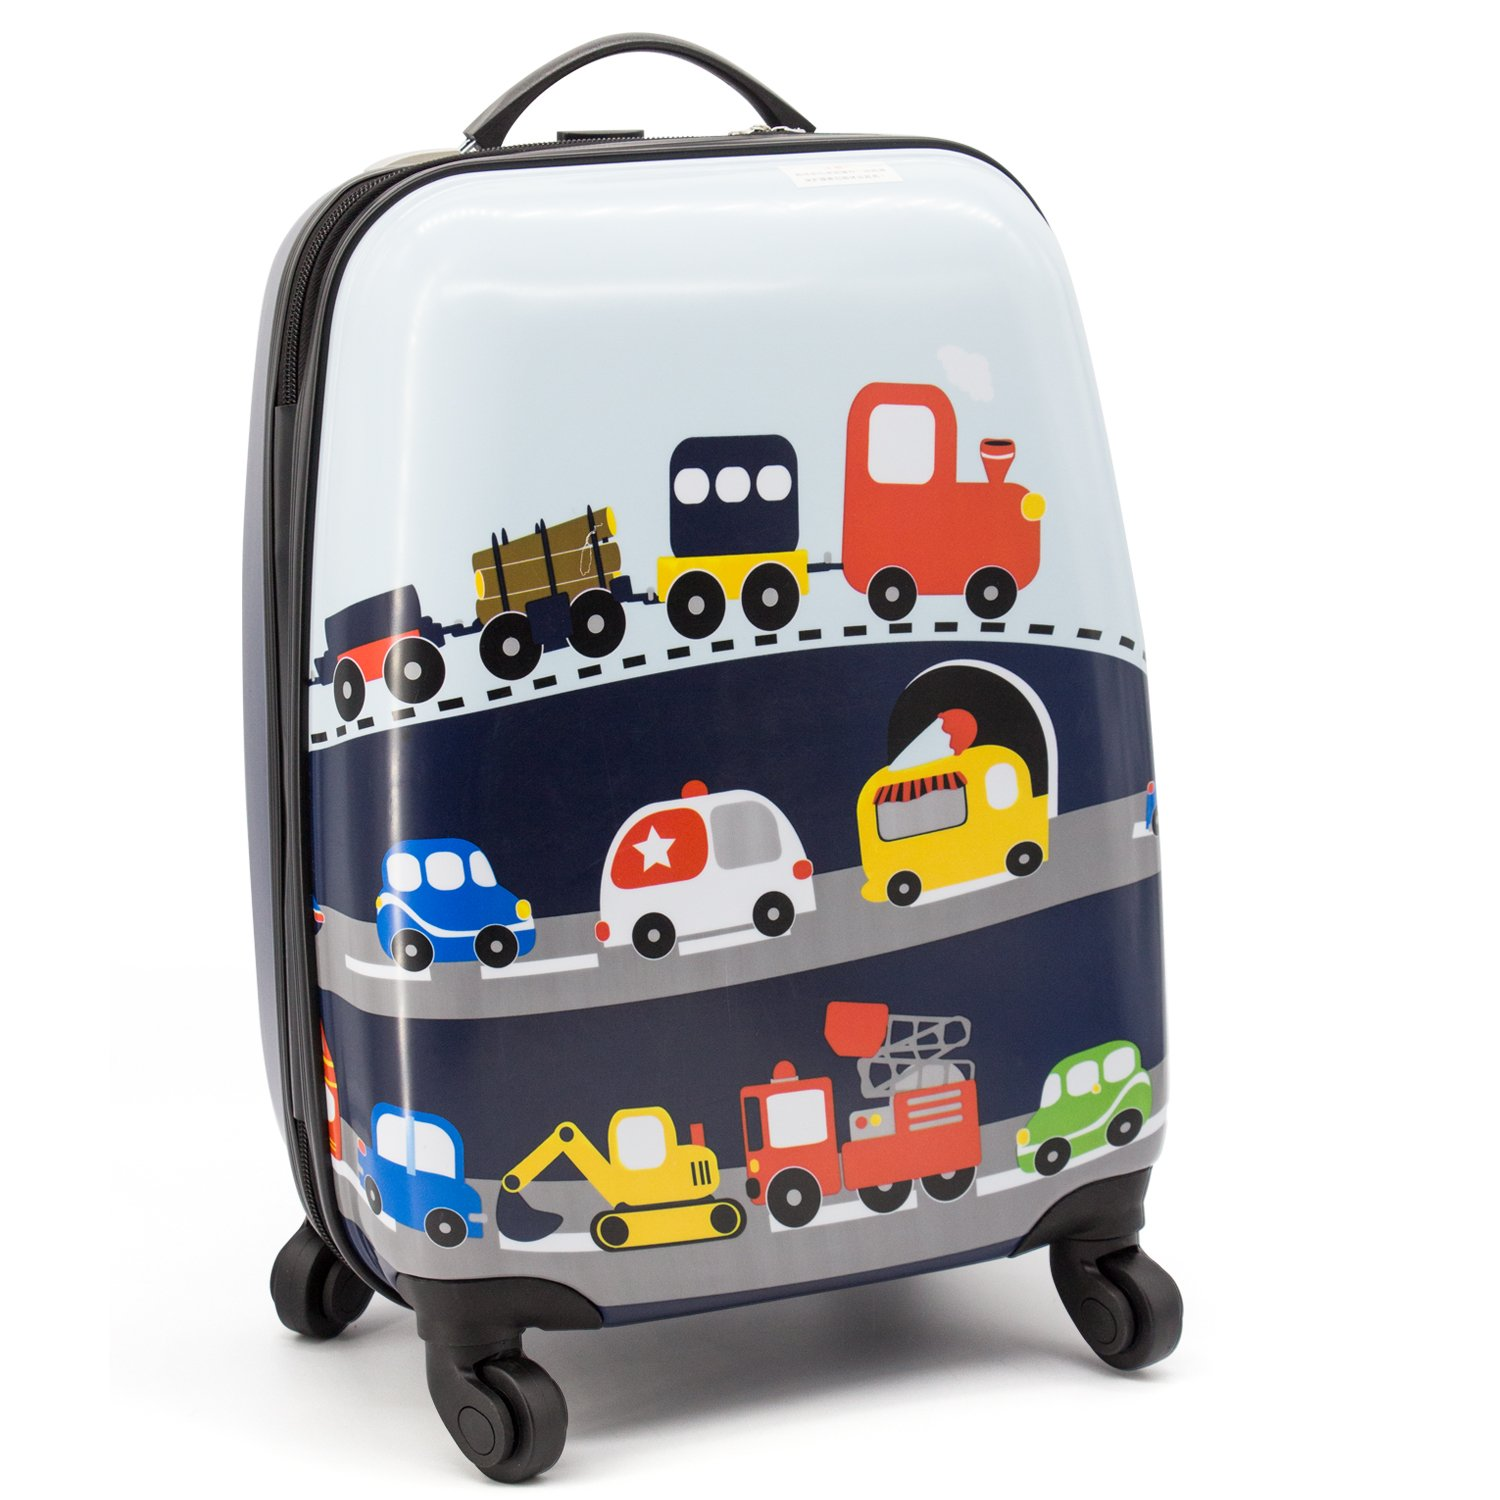 Lttxin cute kids suitcase pull along boys travelling with 4 wheel hard shell 16 inch veholes